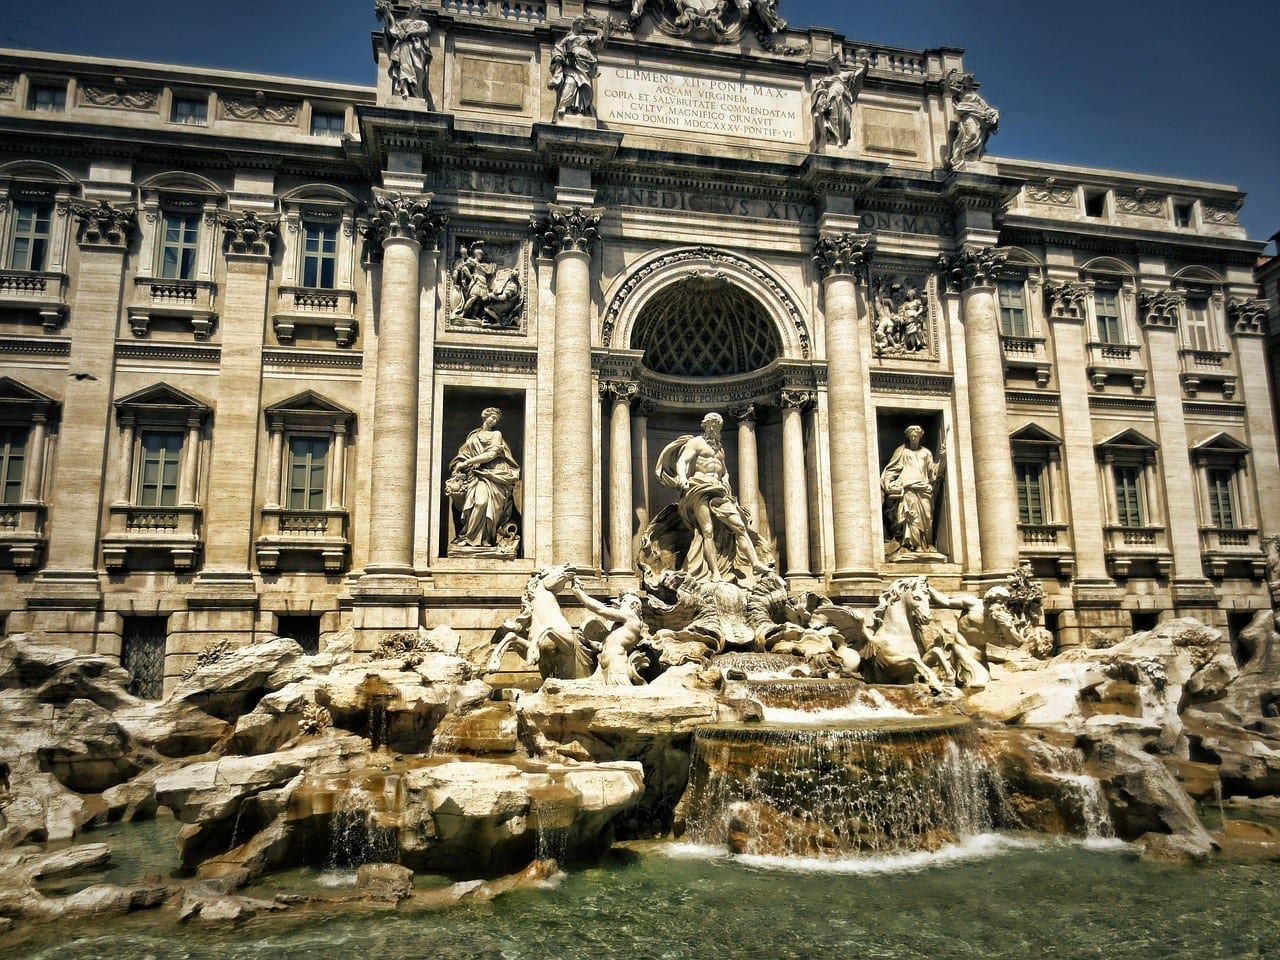 The Trevi Fountain, covered with Baroque era white marble statues and flowing water.